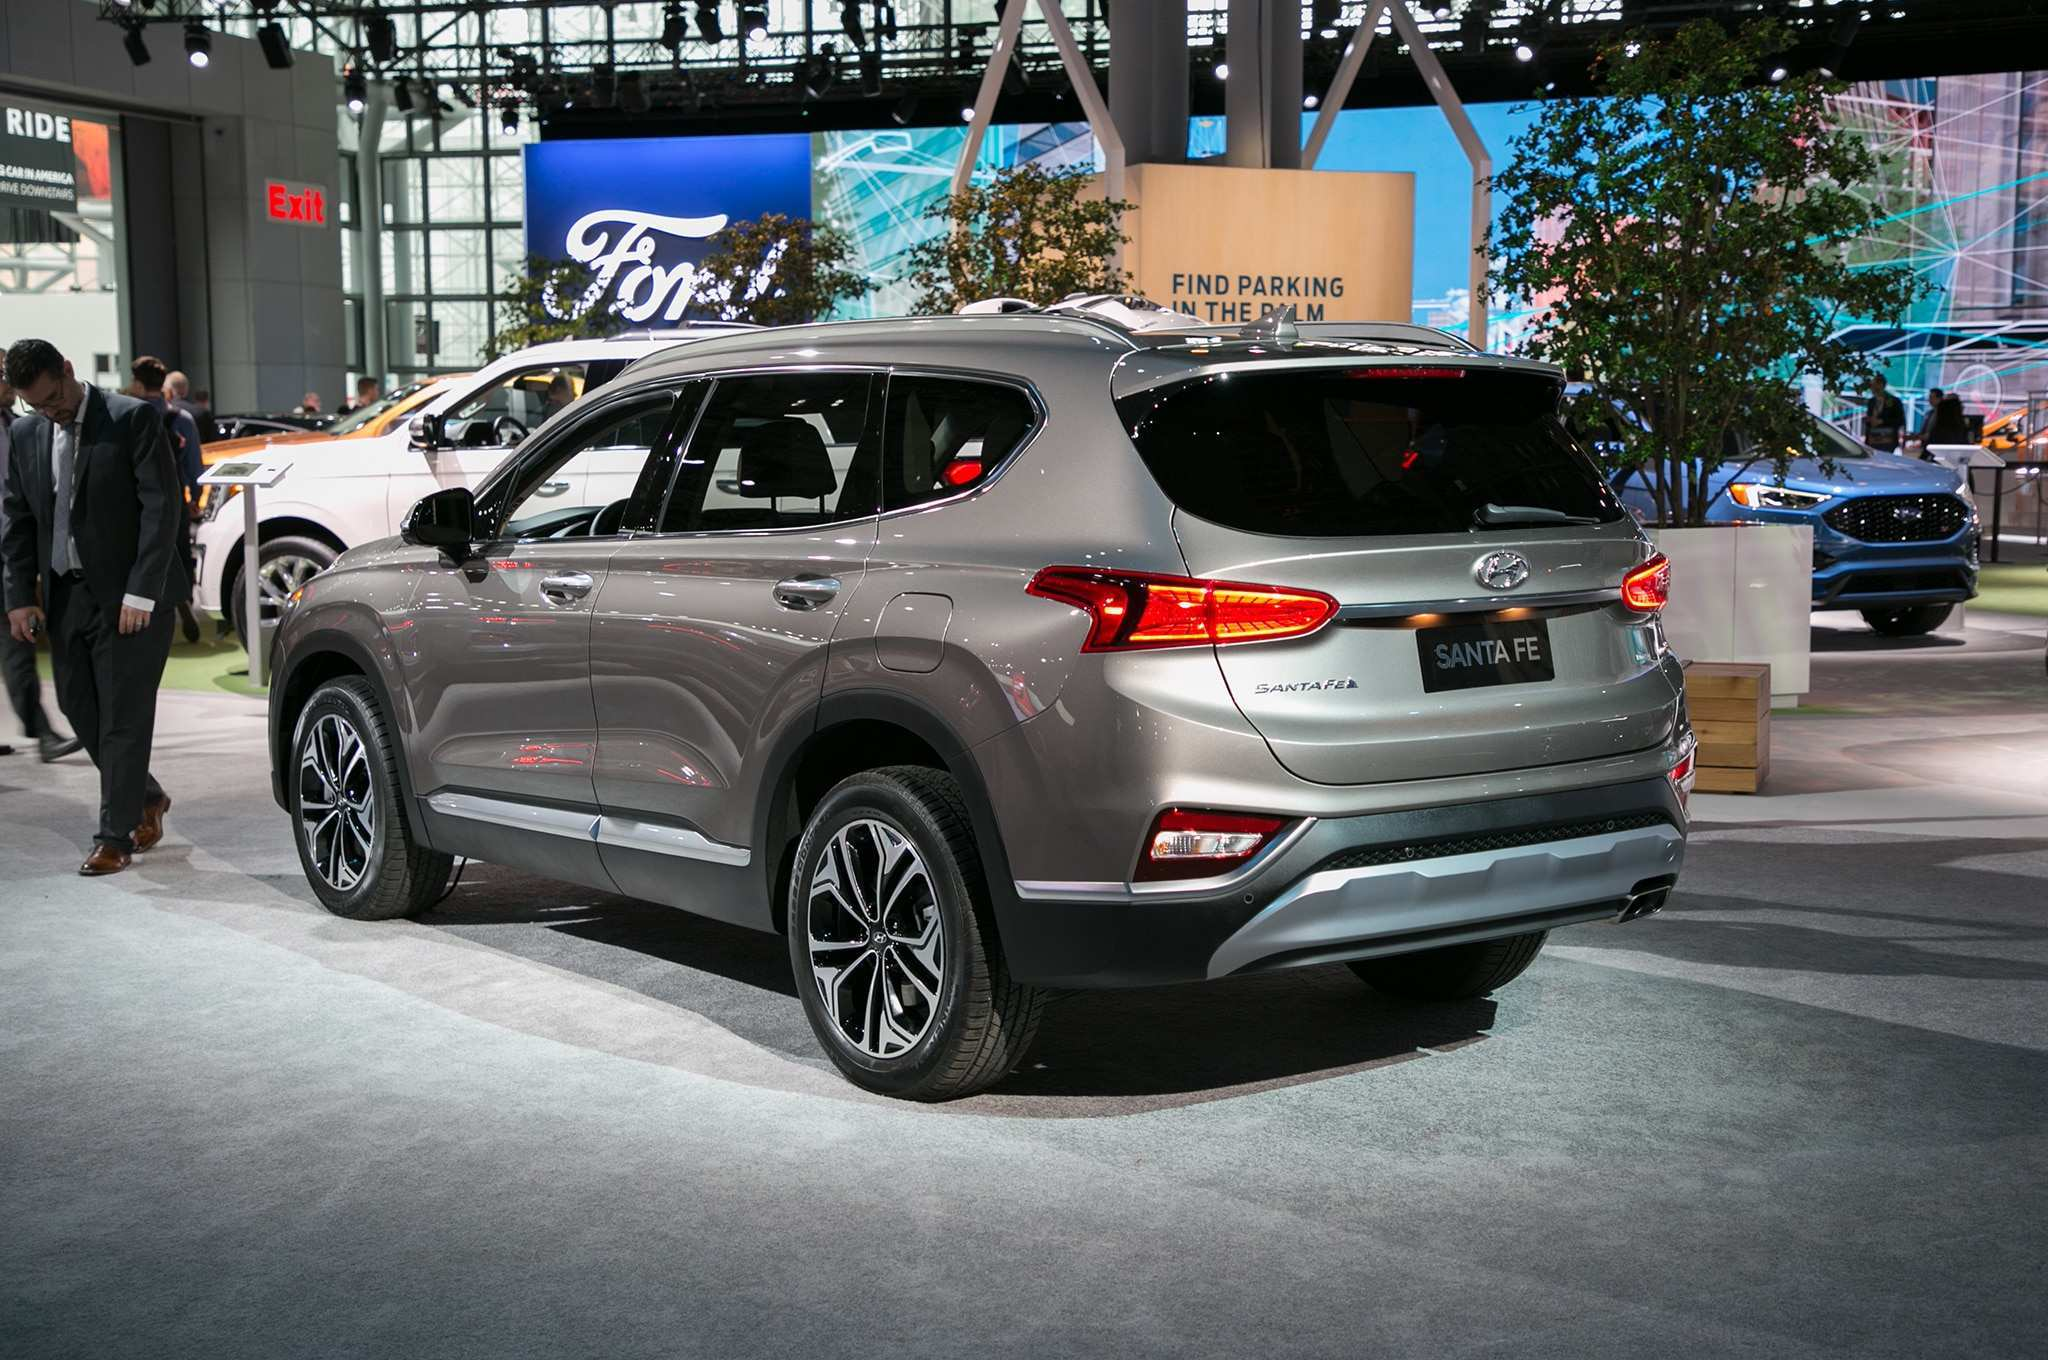 64 All New 2019 Hyundai Santa Fe Engine Pictures